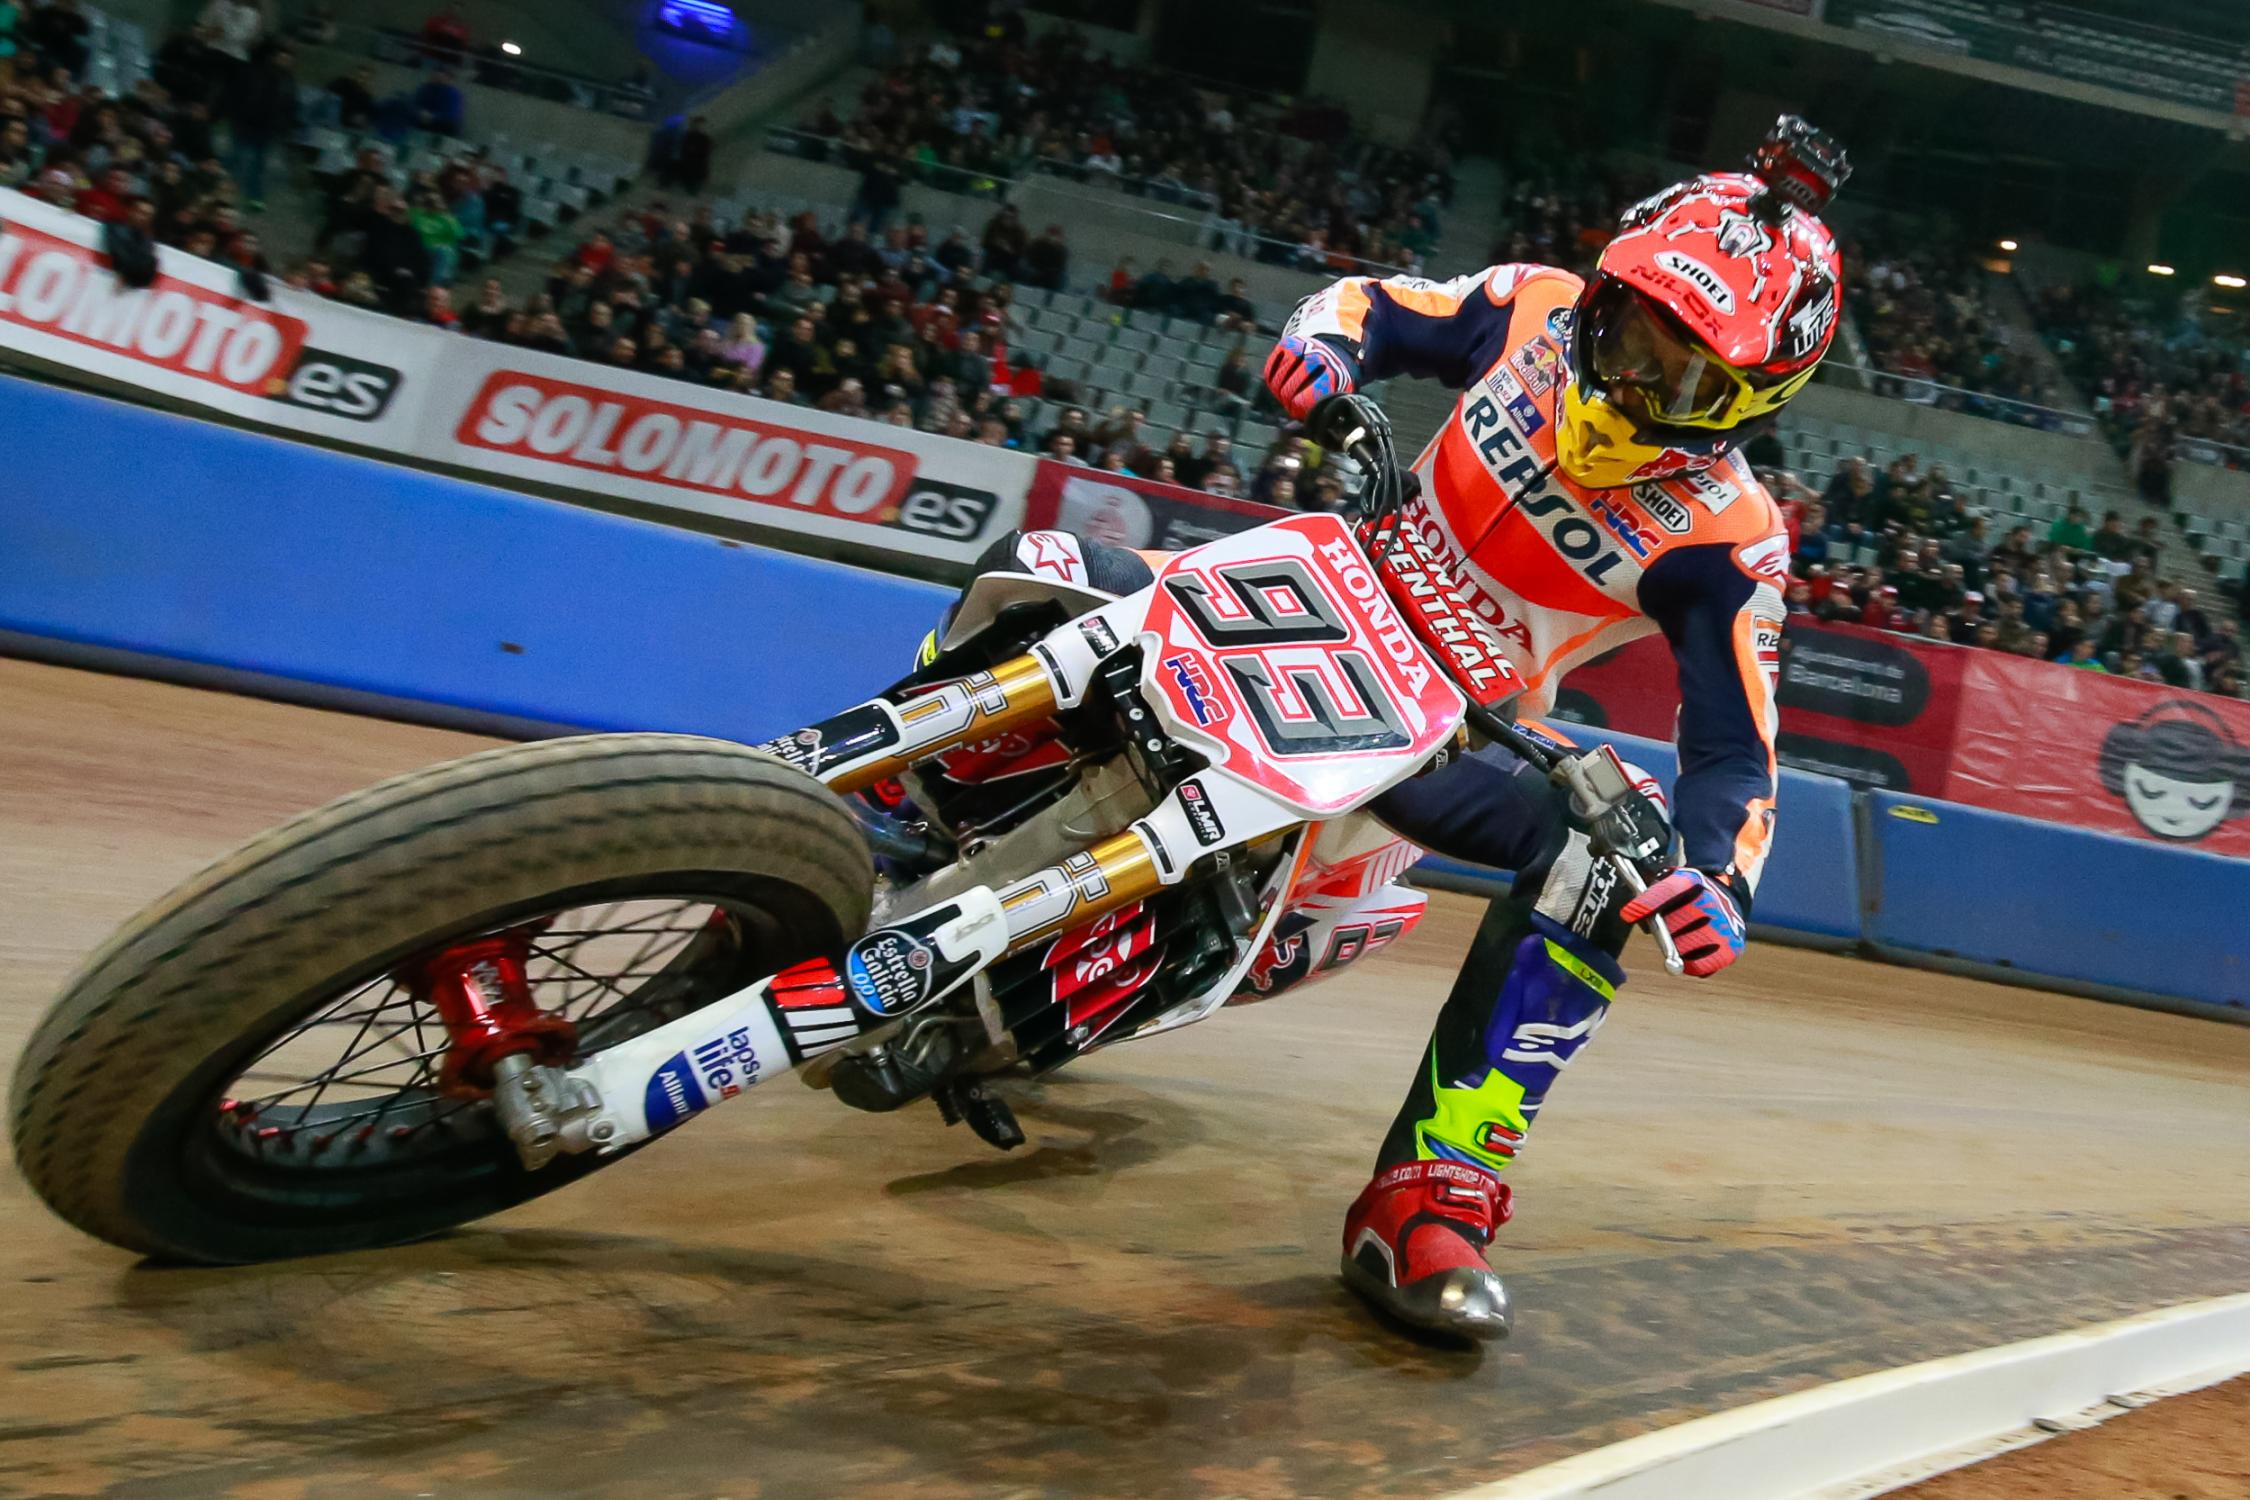 FRENCH GP: Do MotoGP™ Riders Practice Other Sports?